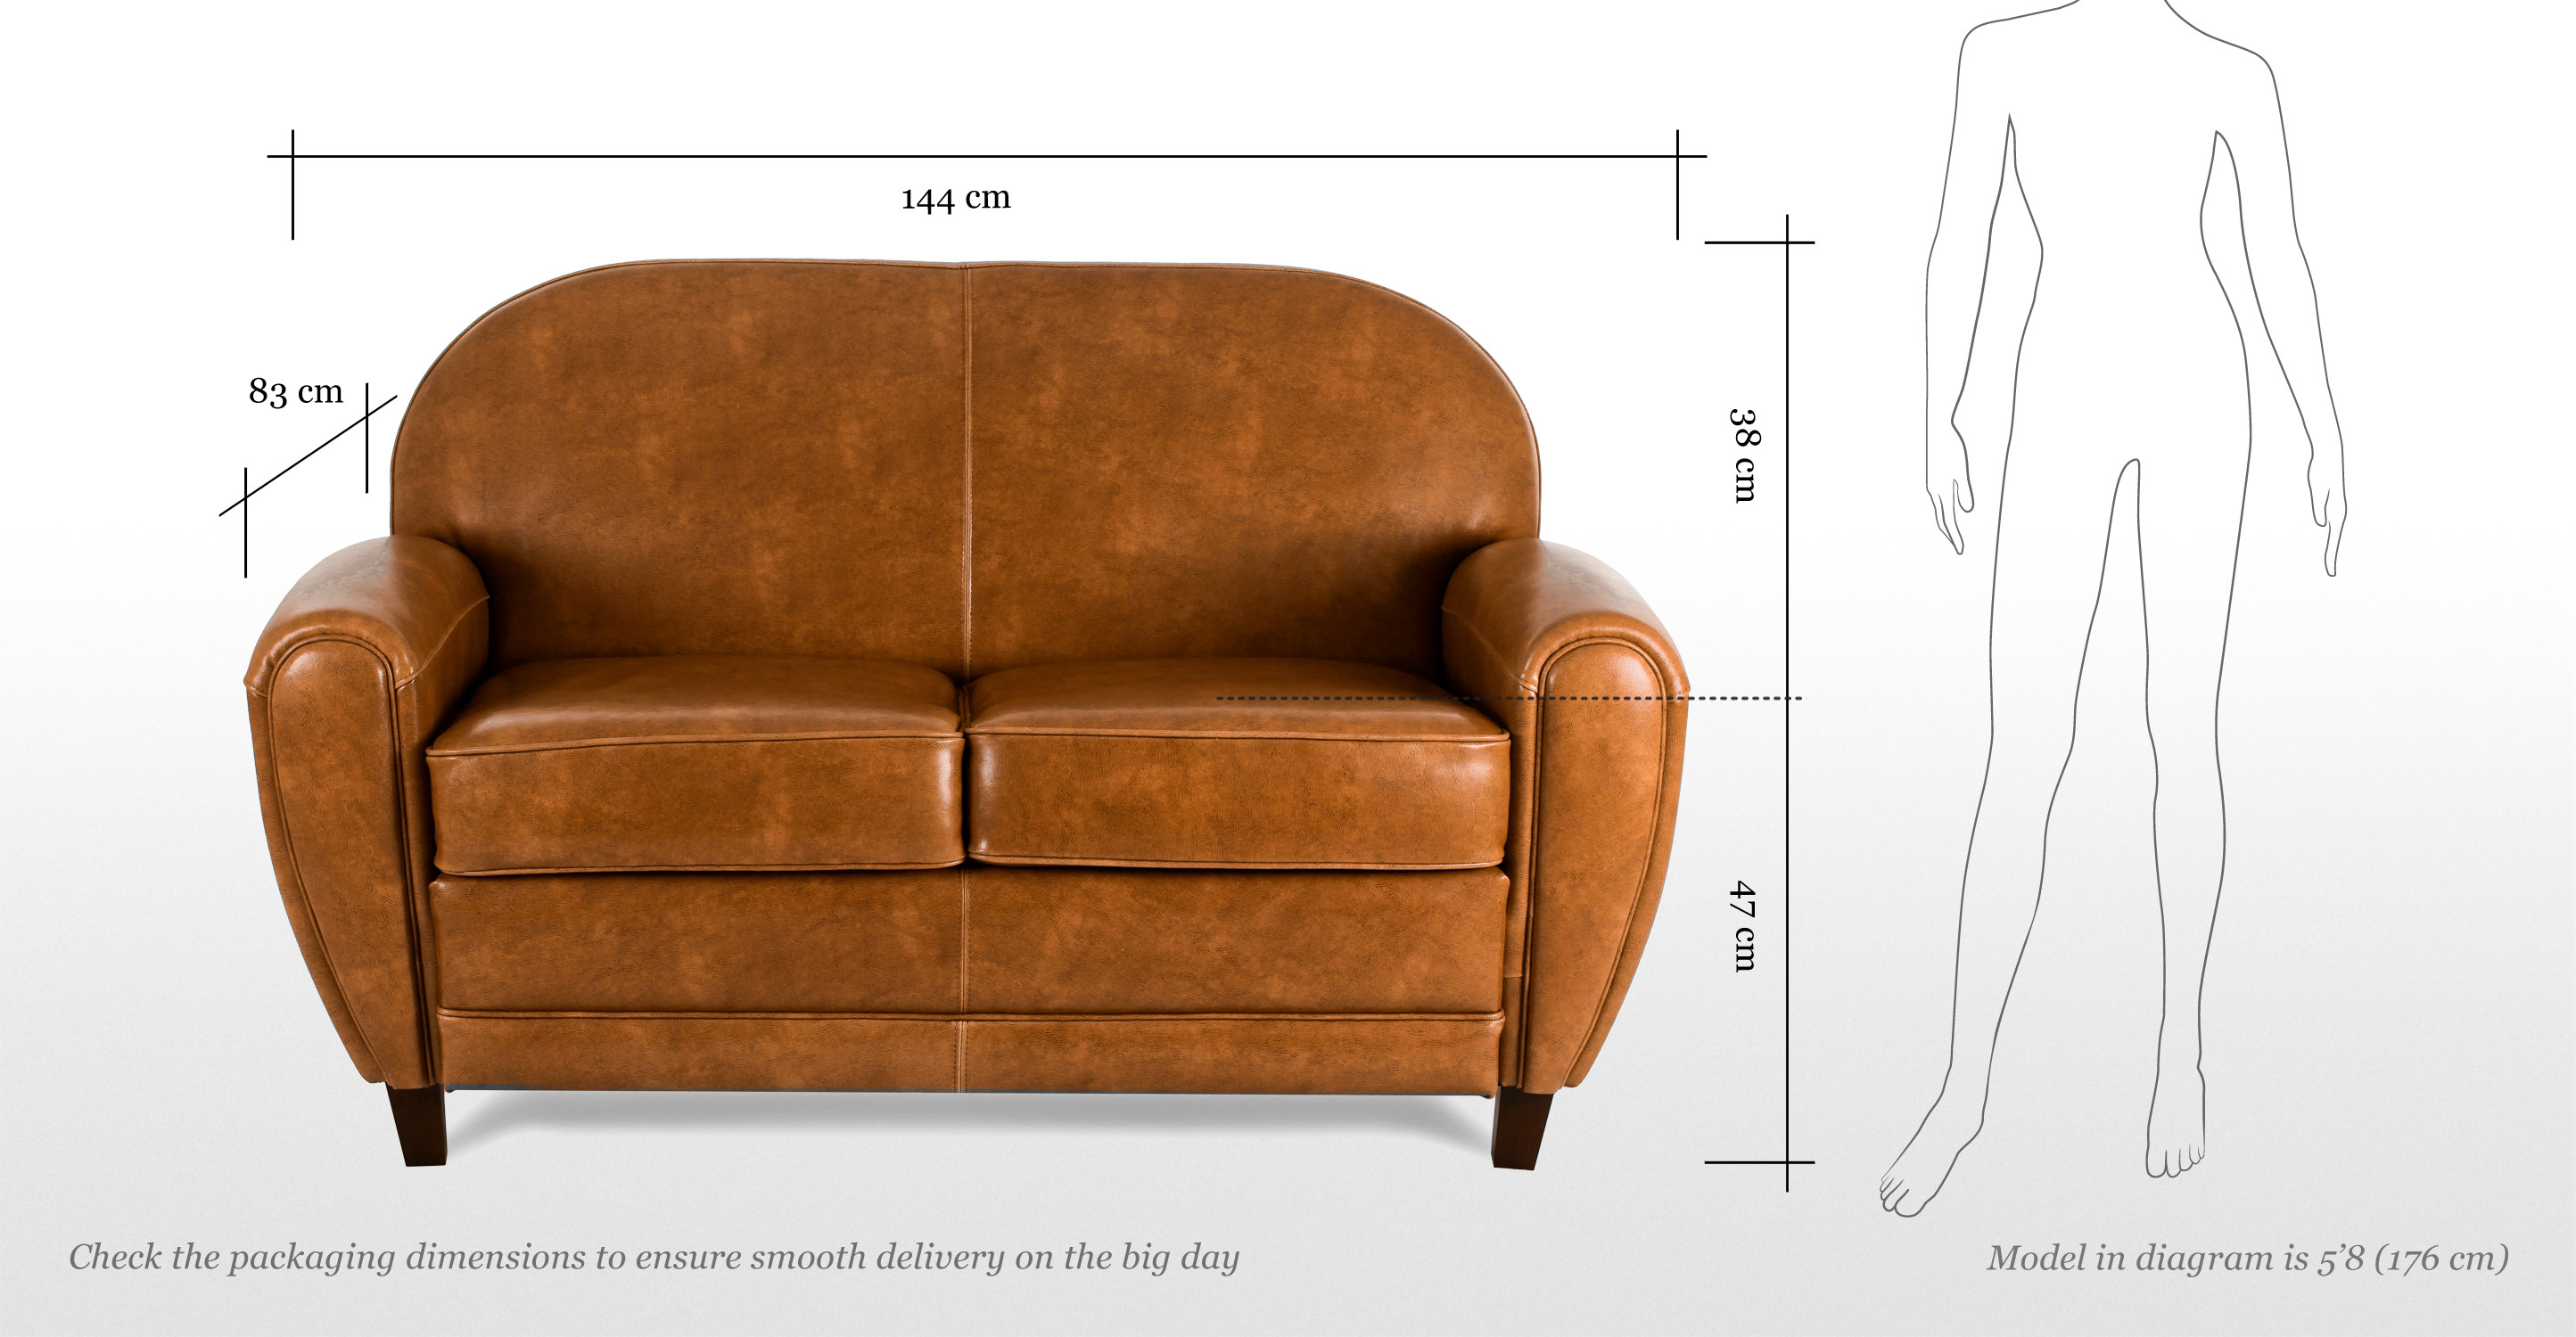 Jazz club 2 seater sofa in cognac madecom for Canape cuir cognac vintage